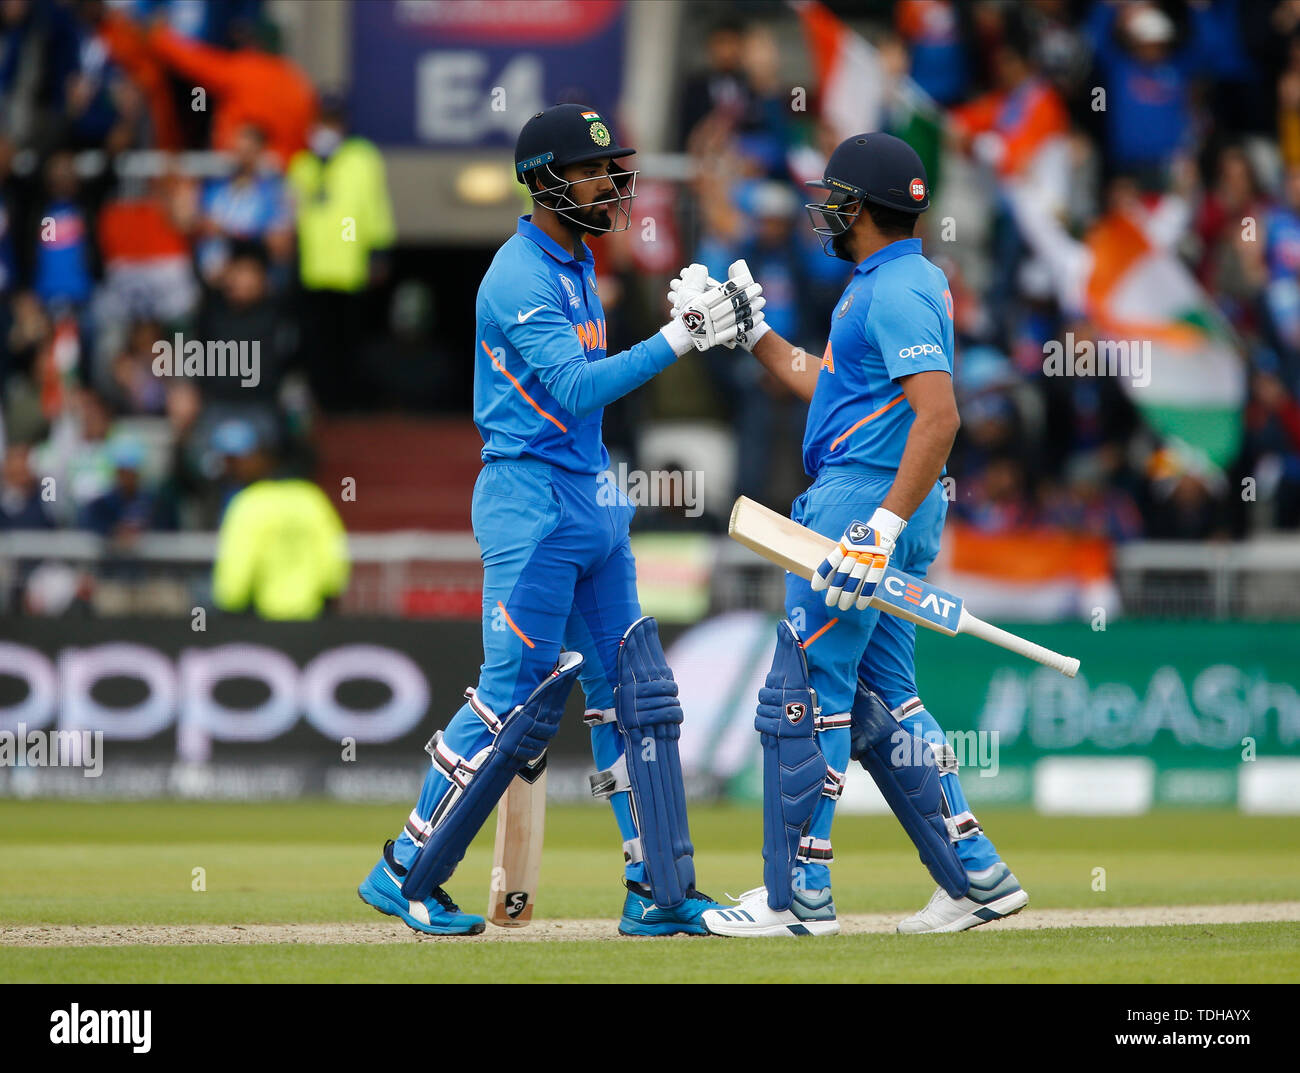 Old Trafford, Manchester, UK. 16th June, 2019. ICC World Cup Cricket, India versus Pakistan; KL Rahul of India brings up his half century and is congratulated by Rohit Sharma Credit: Action Plus Sports/Alamy Live News - Stock Image